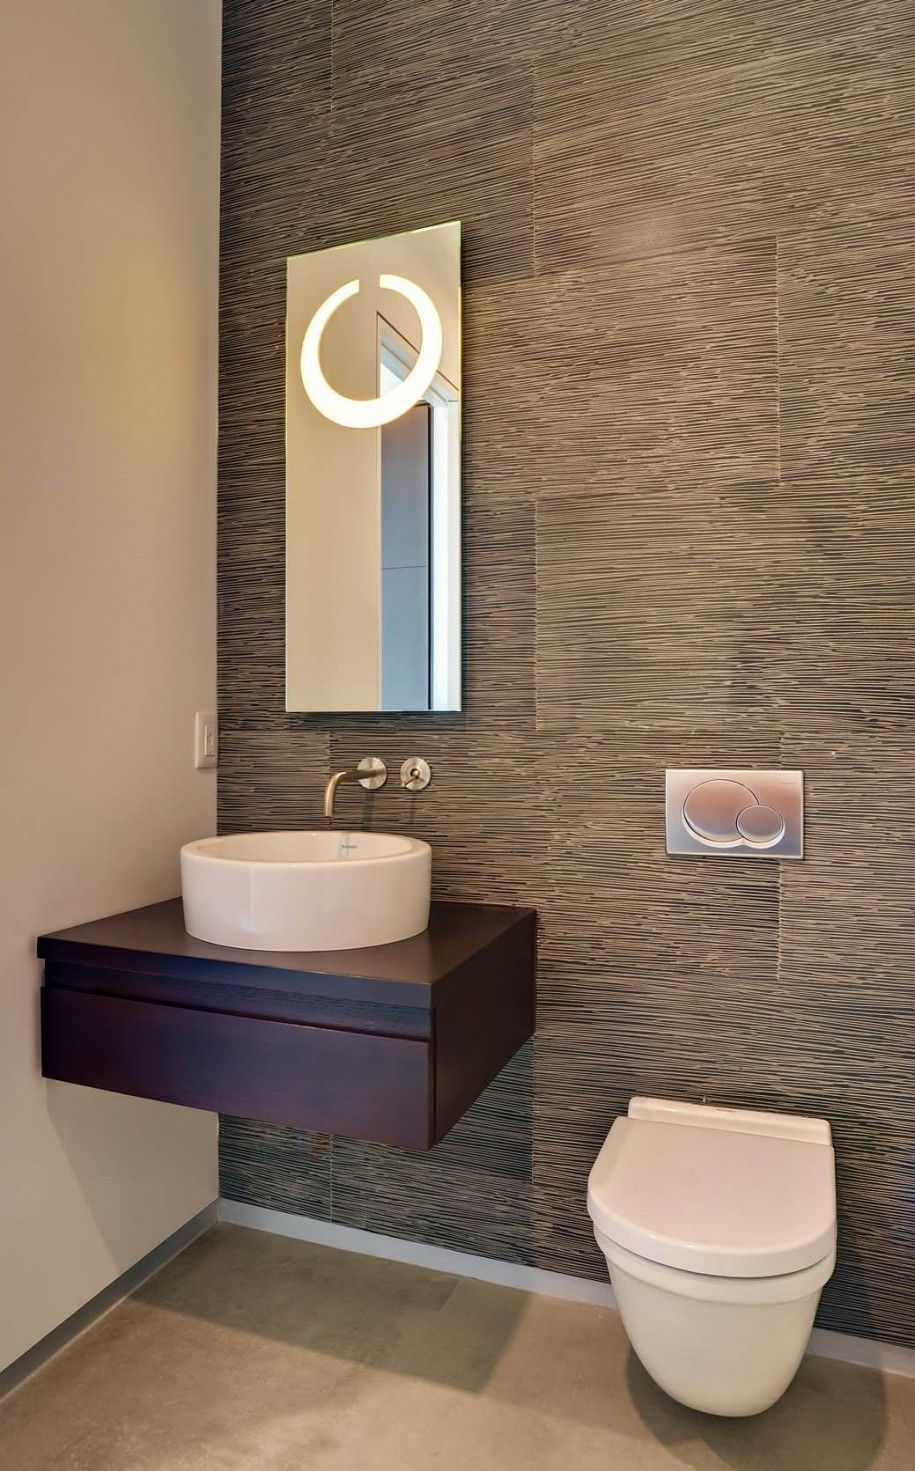 Modern Small Powder Room Design Featuring Cool Grey Wood Grain ... for modern powder room tile  10lpwja